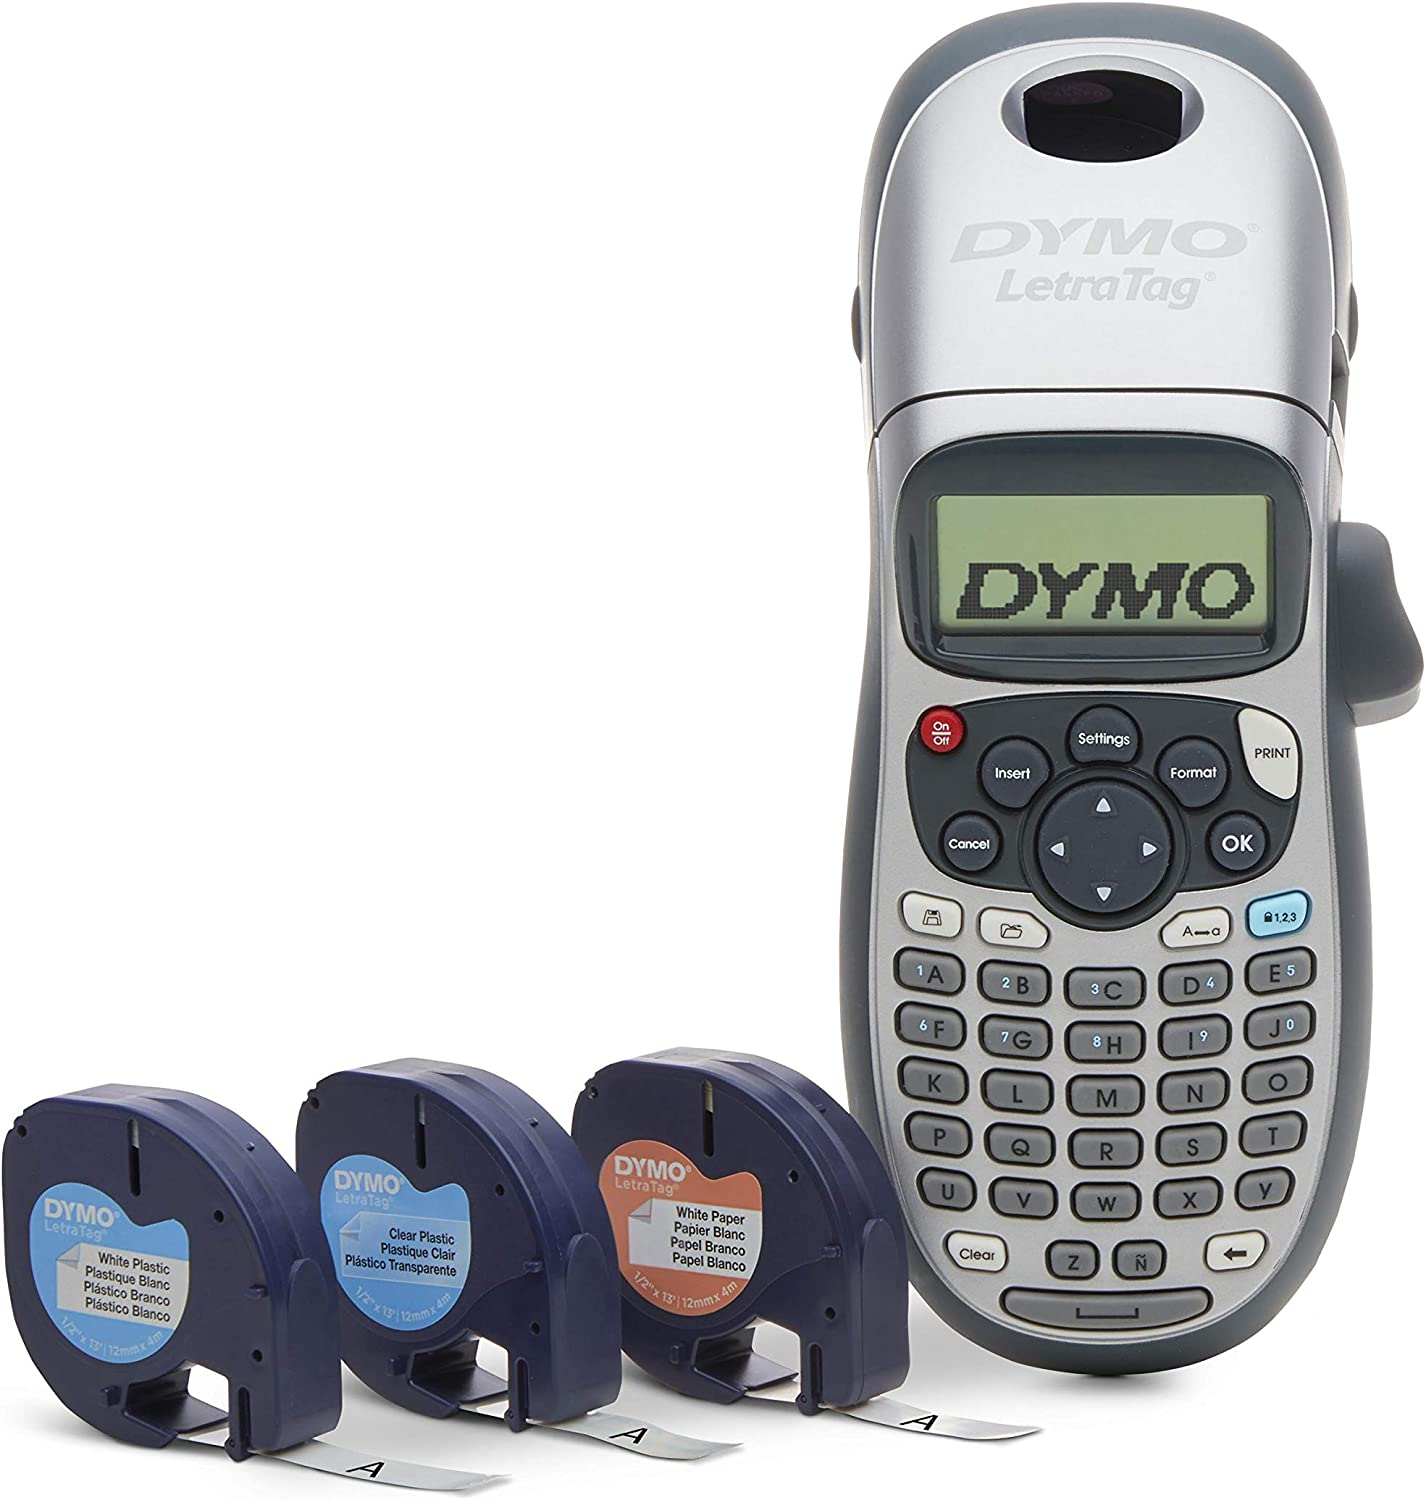 DYMO LetraTag LT-100H Handheld Label Maker for Office or Home (1749027), Colors May Vary, Silver : Electronics